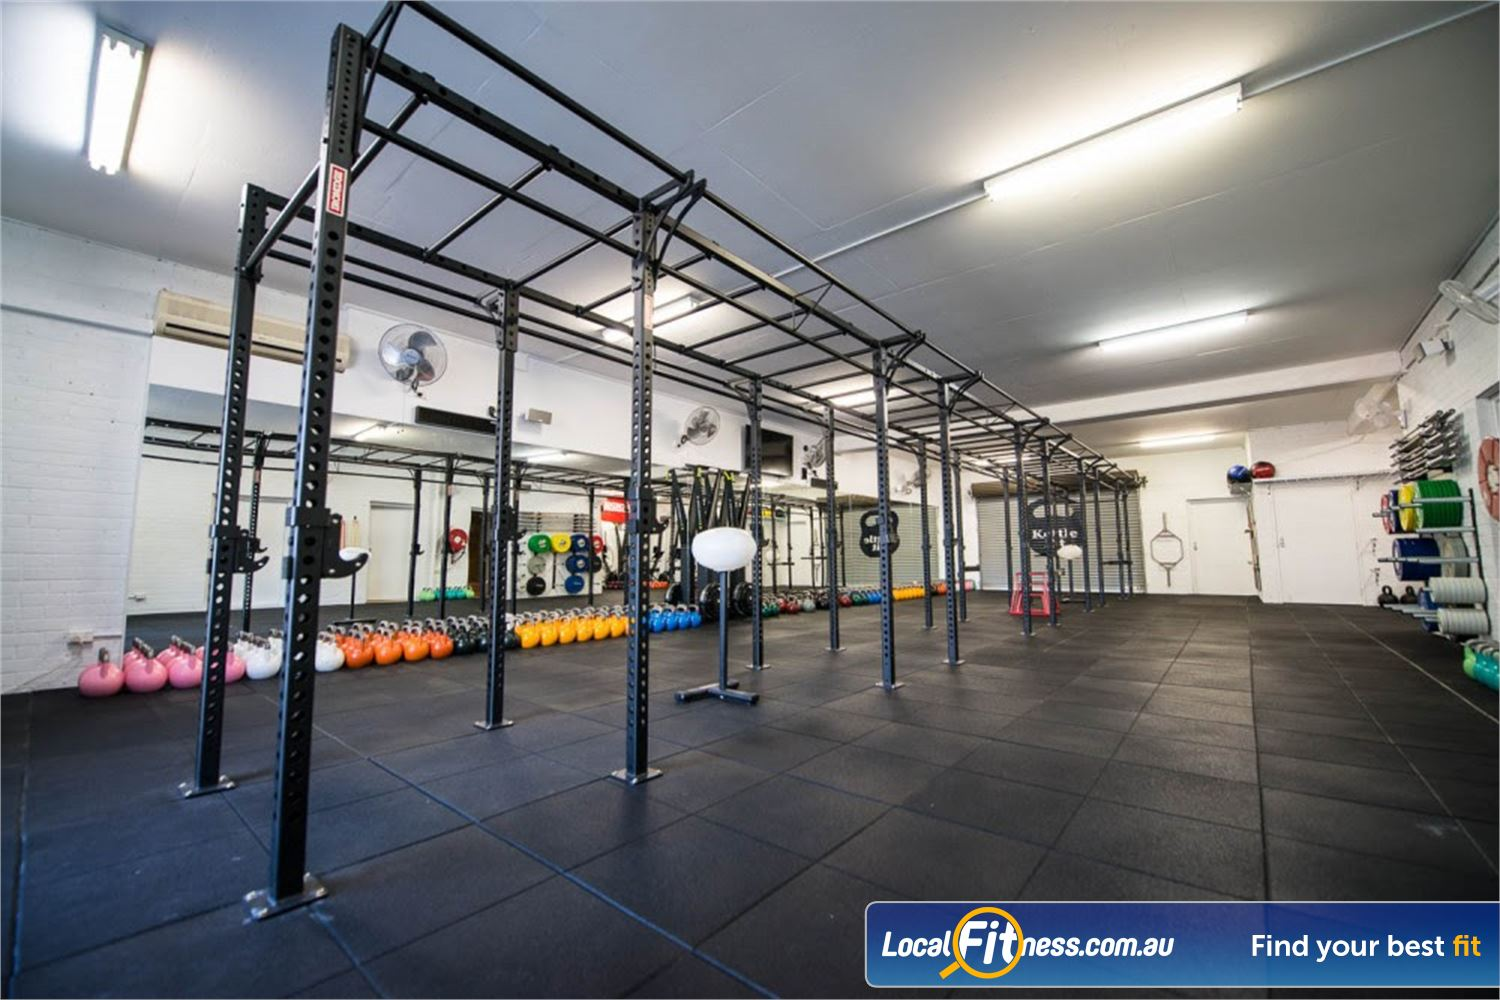 KettleFit Ascot Vale Travancore KettleFit specialises in Kettlebell, HIIT and functional training.